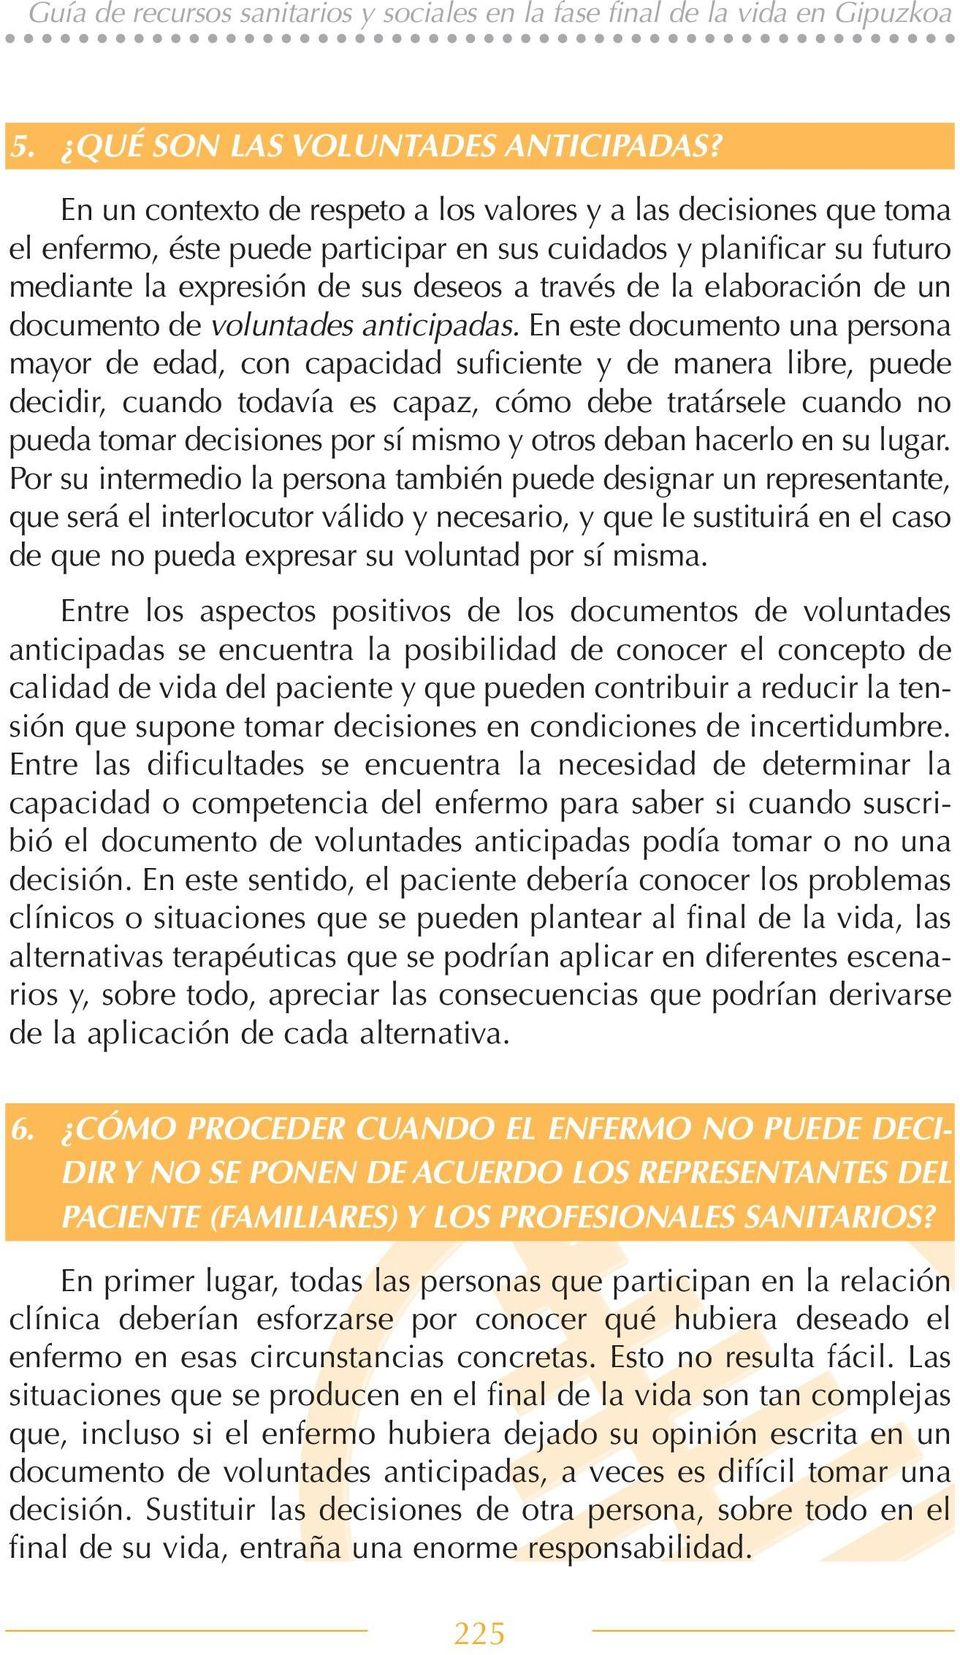 elaboración de un documento de voluntades anticipadas.